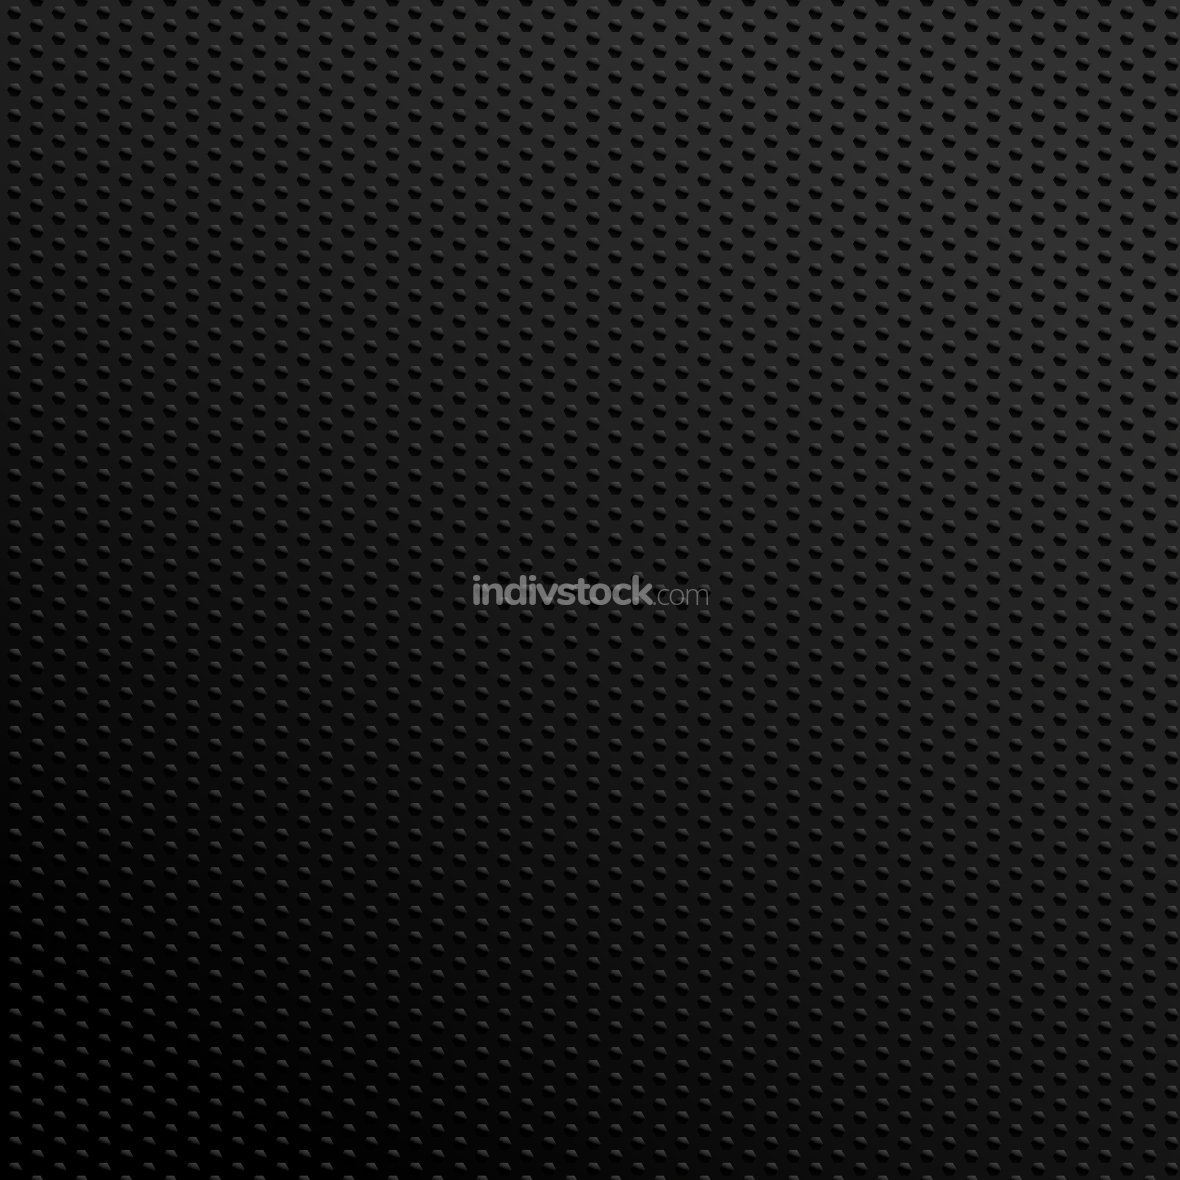 free download: hexagon background